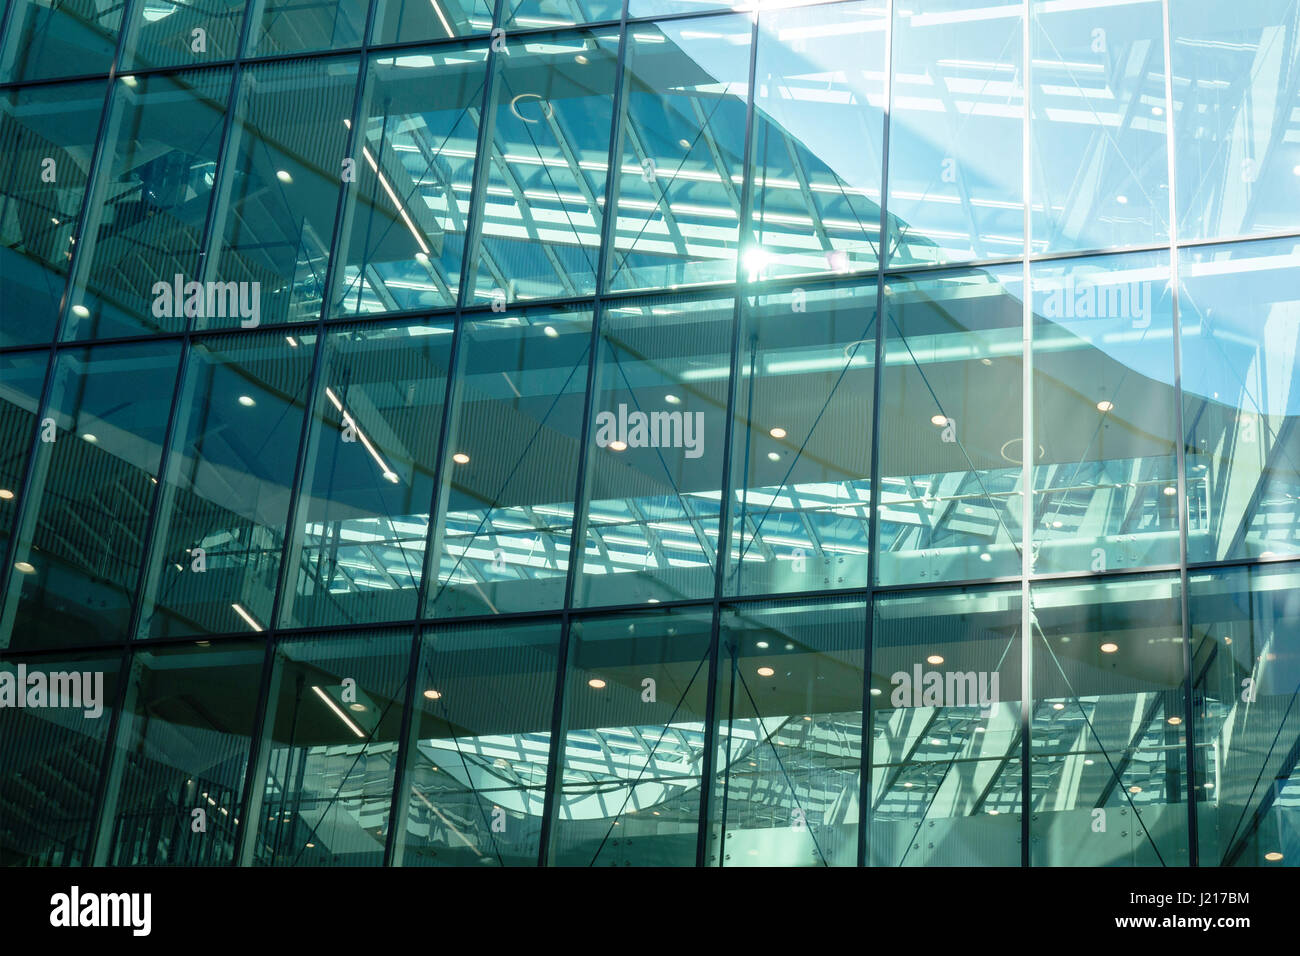 Glass wall of mordern office building - Stock Image